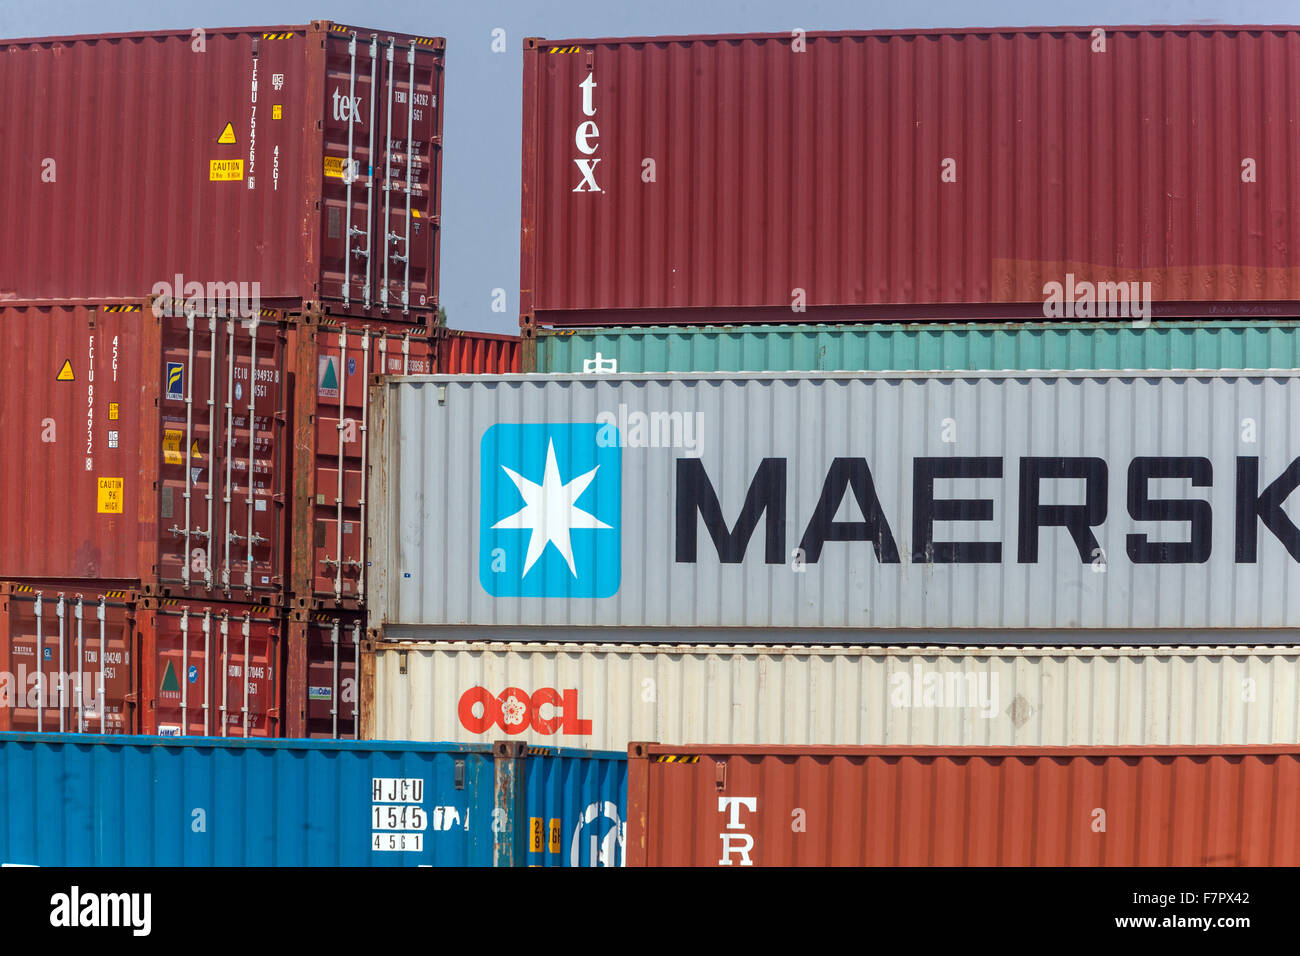 Maersk container shipping sign brand - Stock Image